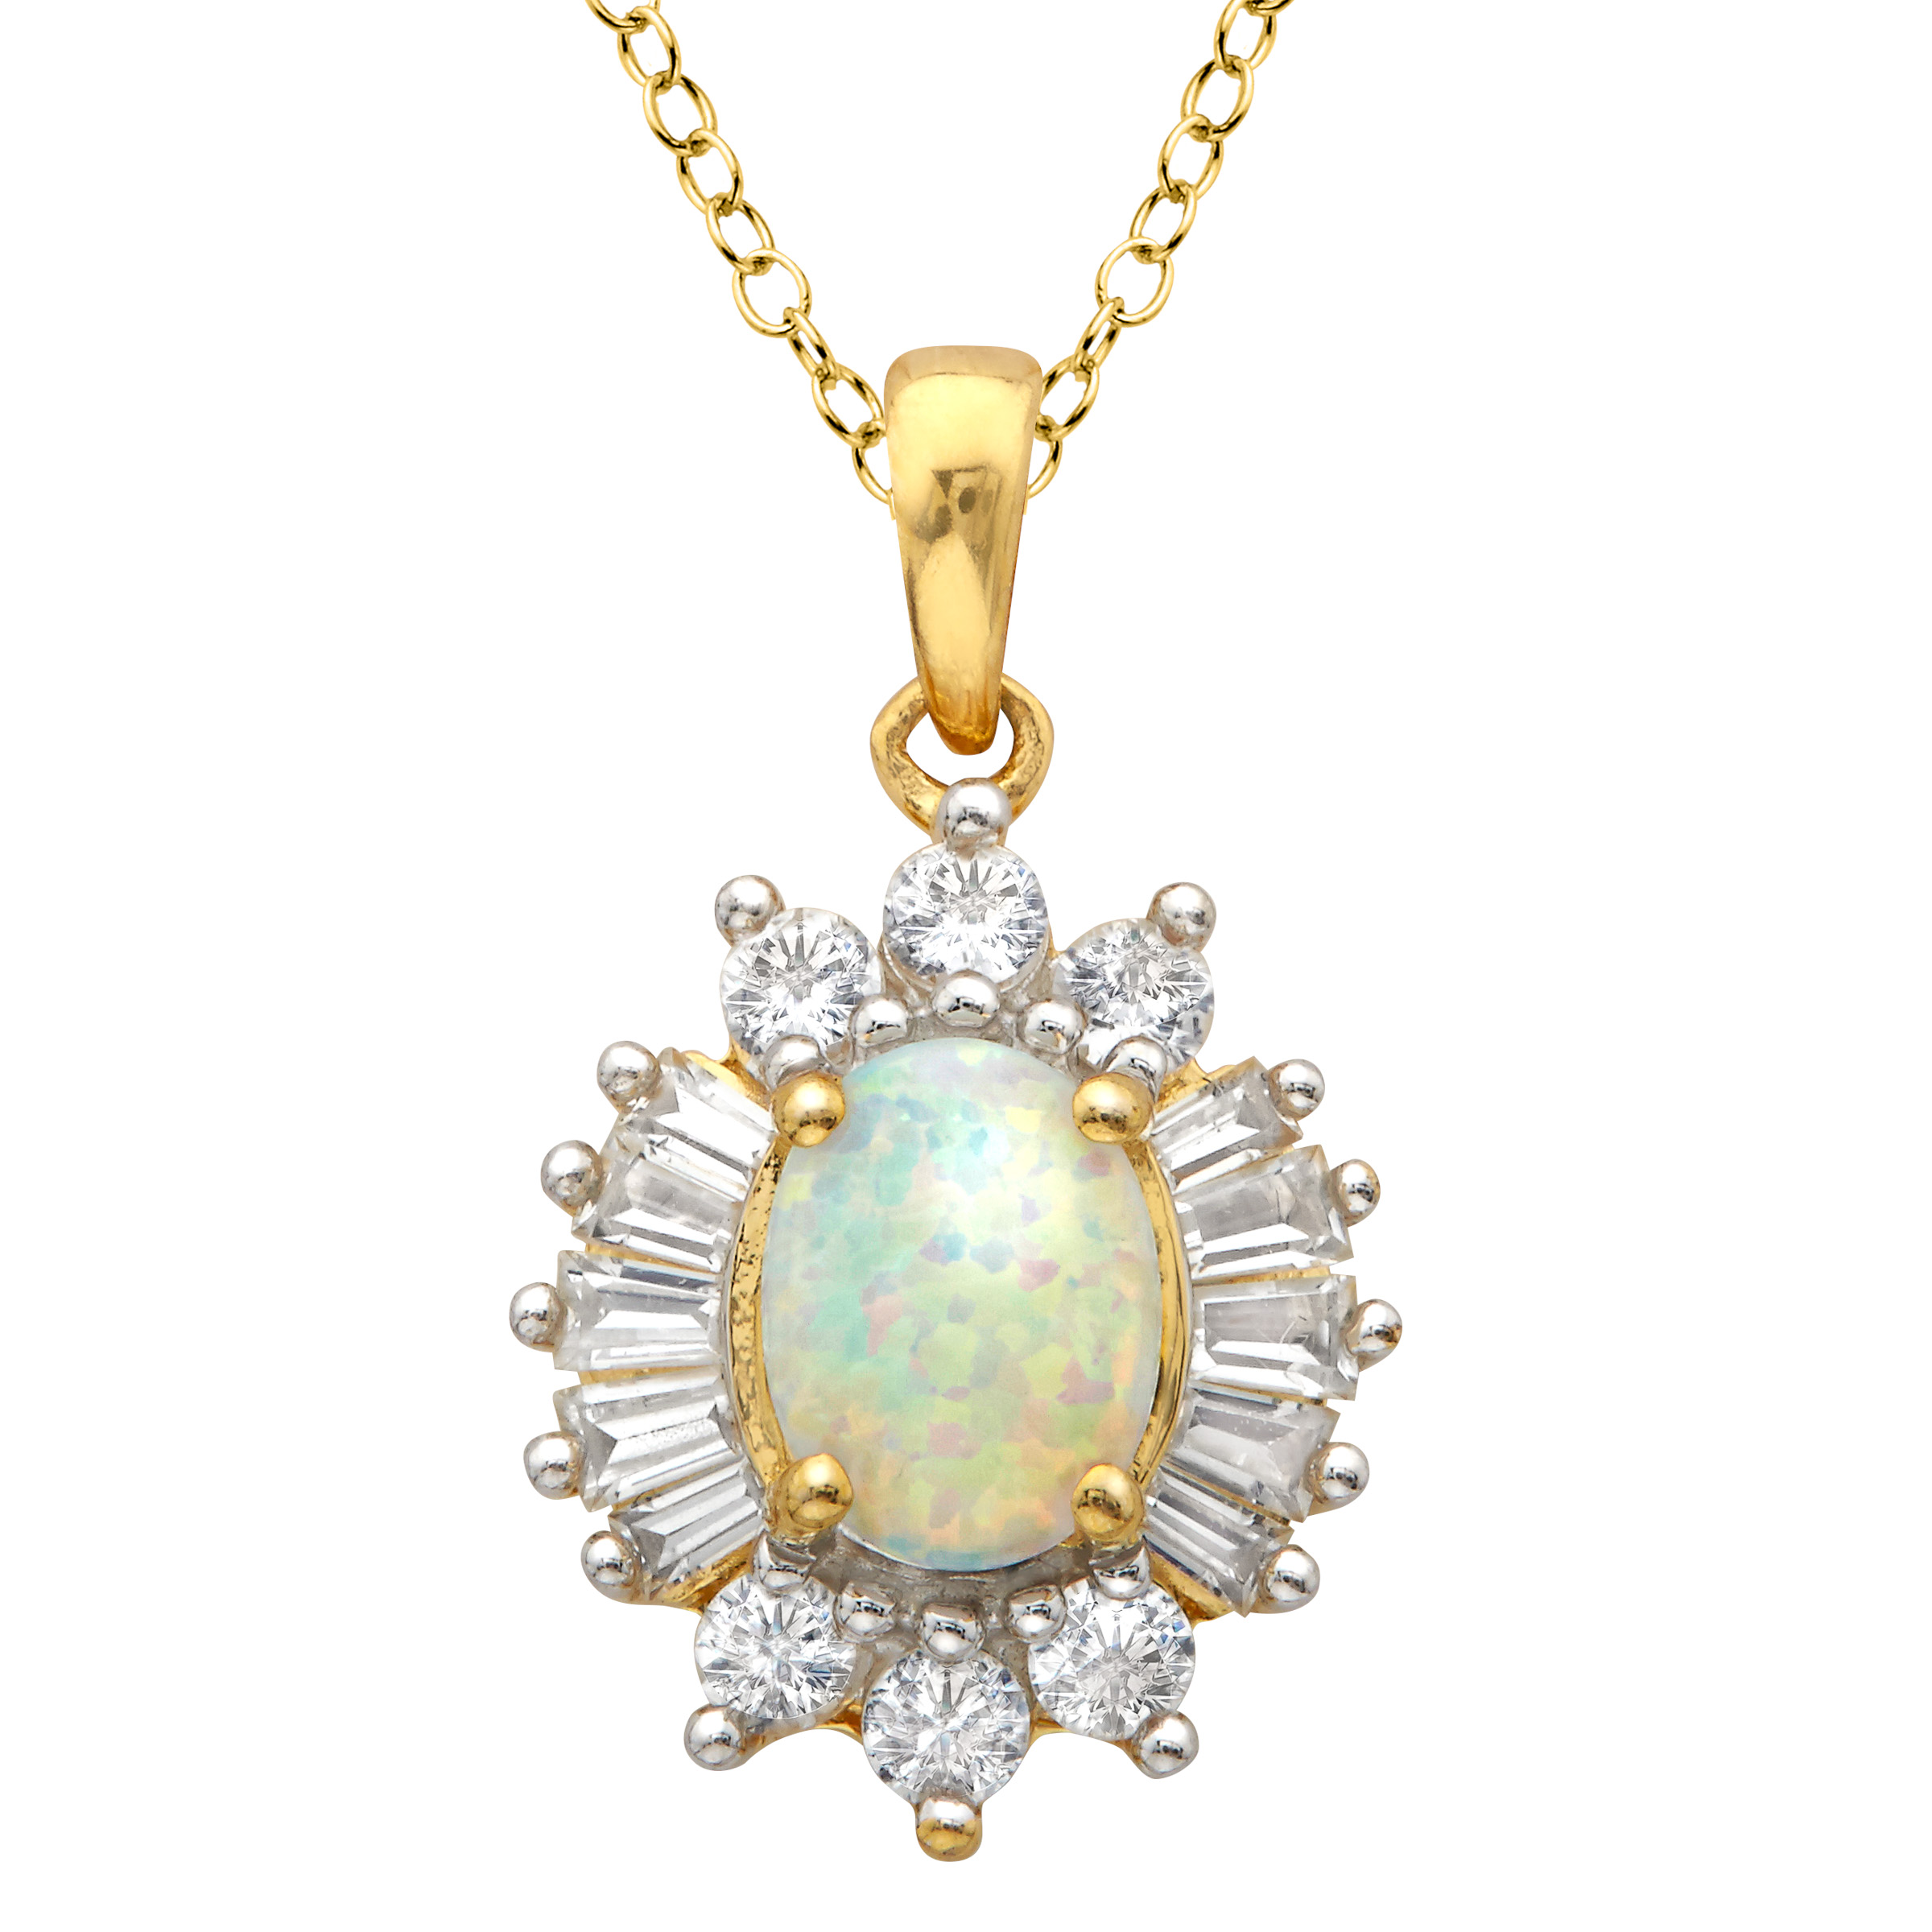 1 2 ct Created Opal & Created White Sapphire Pendant Necklace in 18kt Gold-Plated Sterling Silver by Richline Group